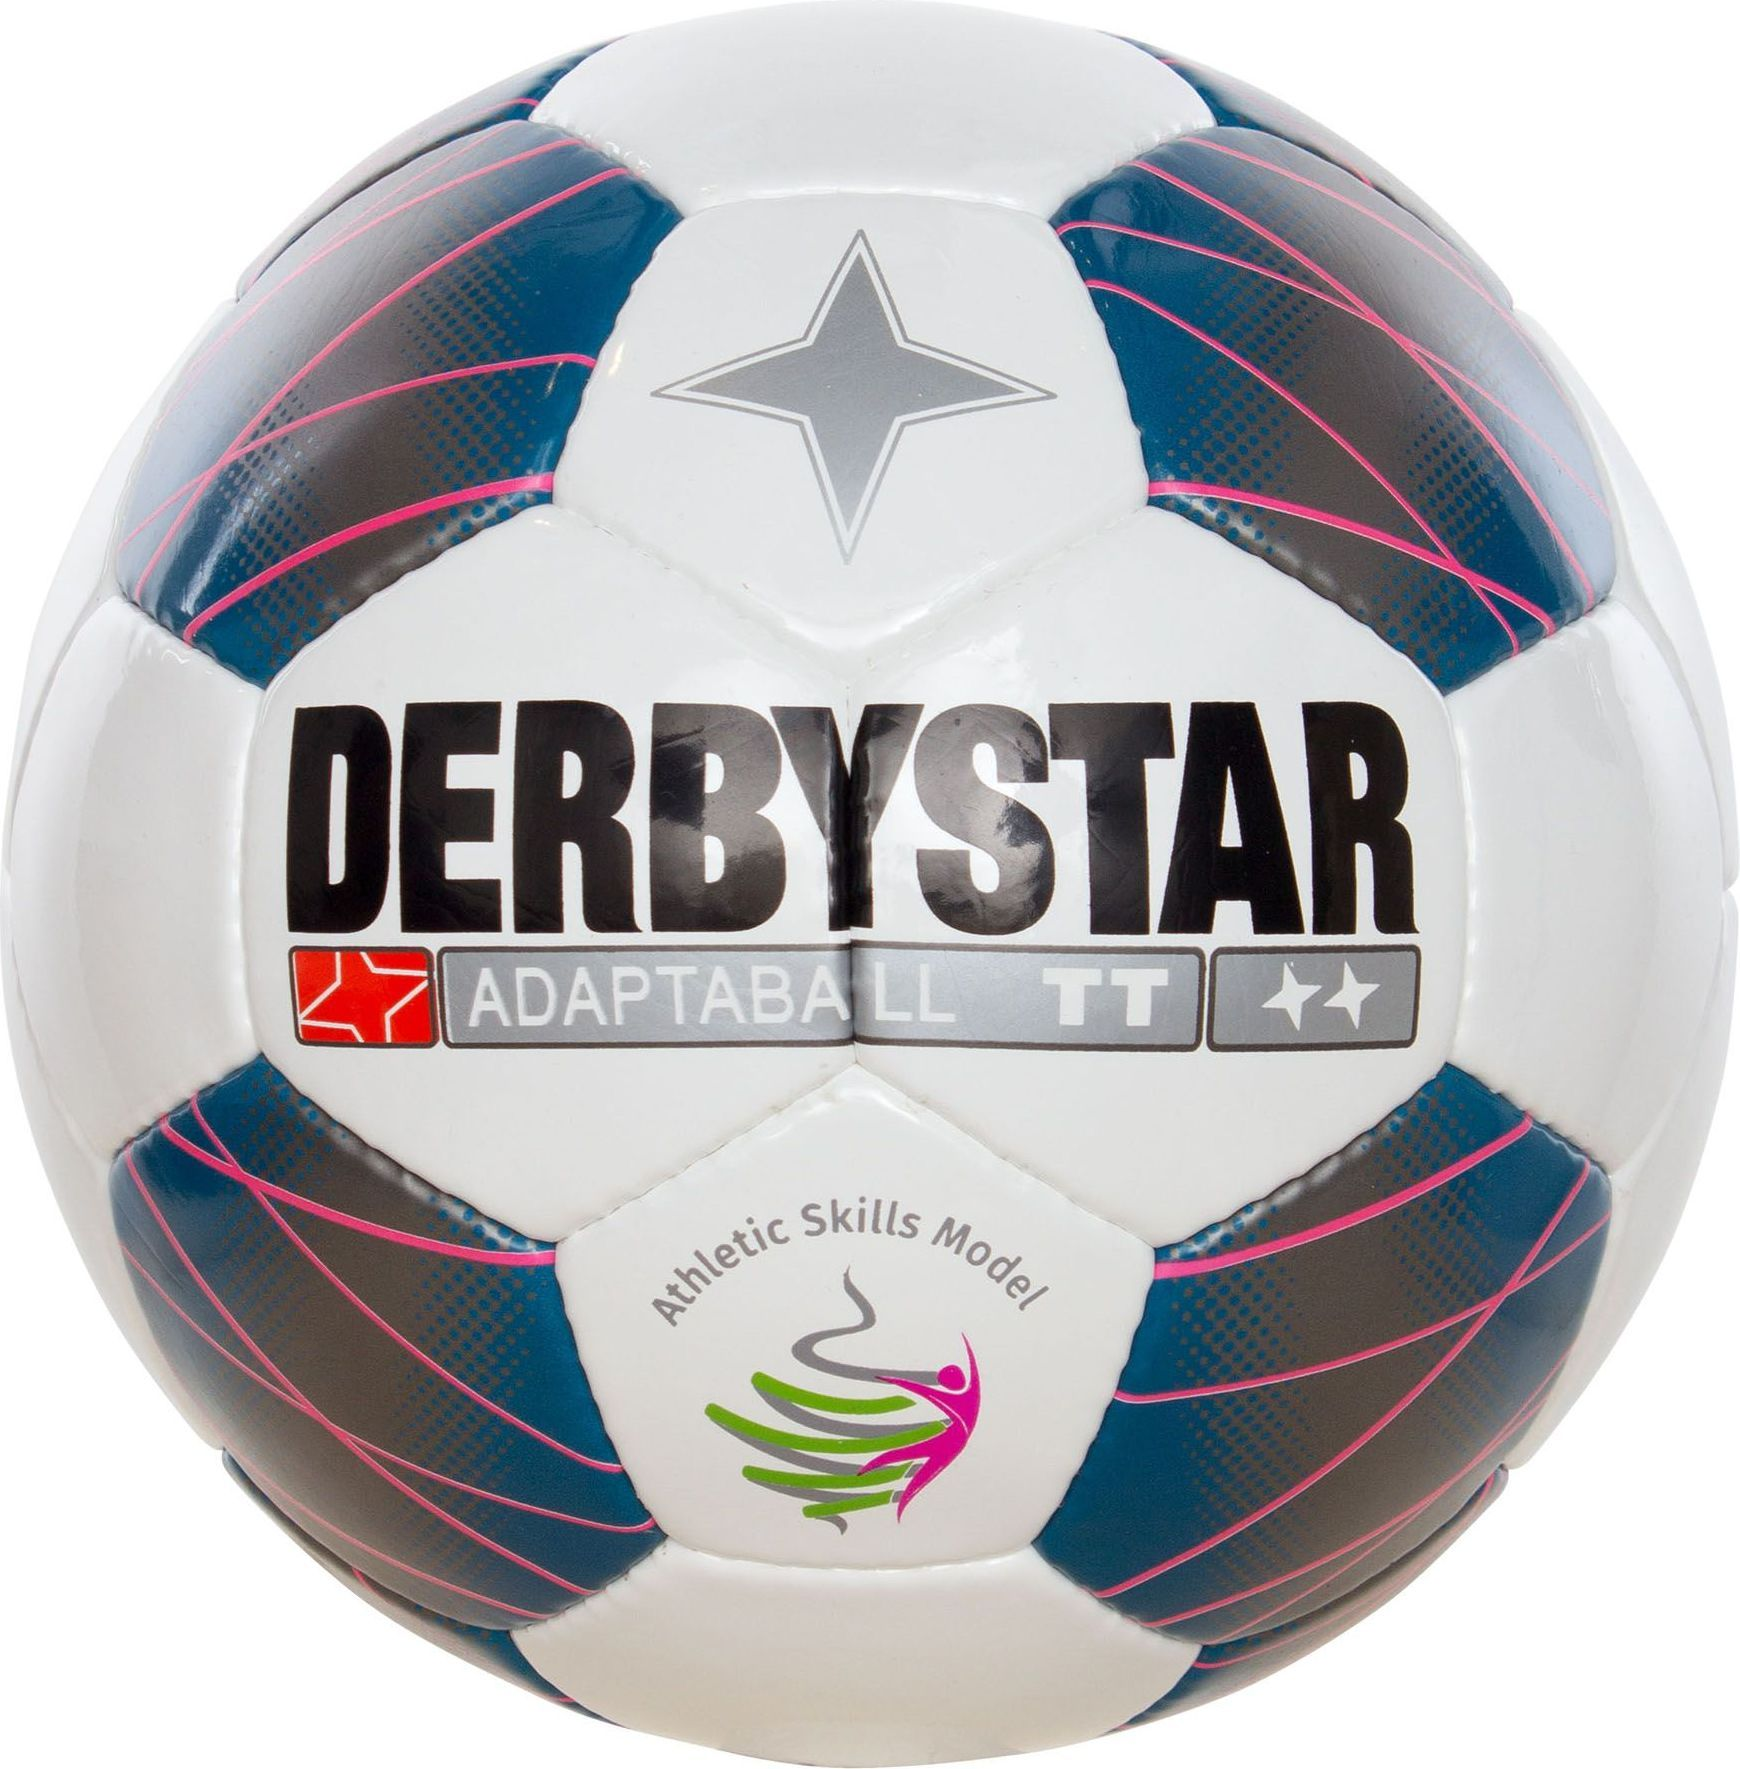 Derbystar Adaptaball Tt Kunstgrasbal - Wit